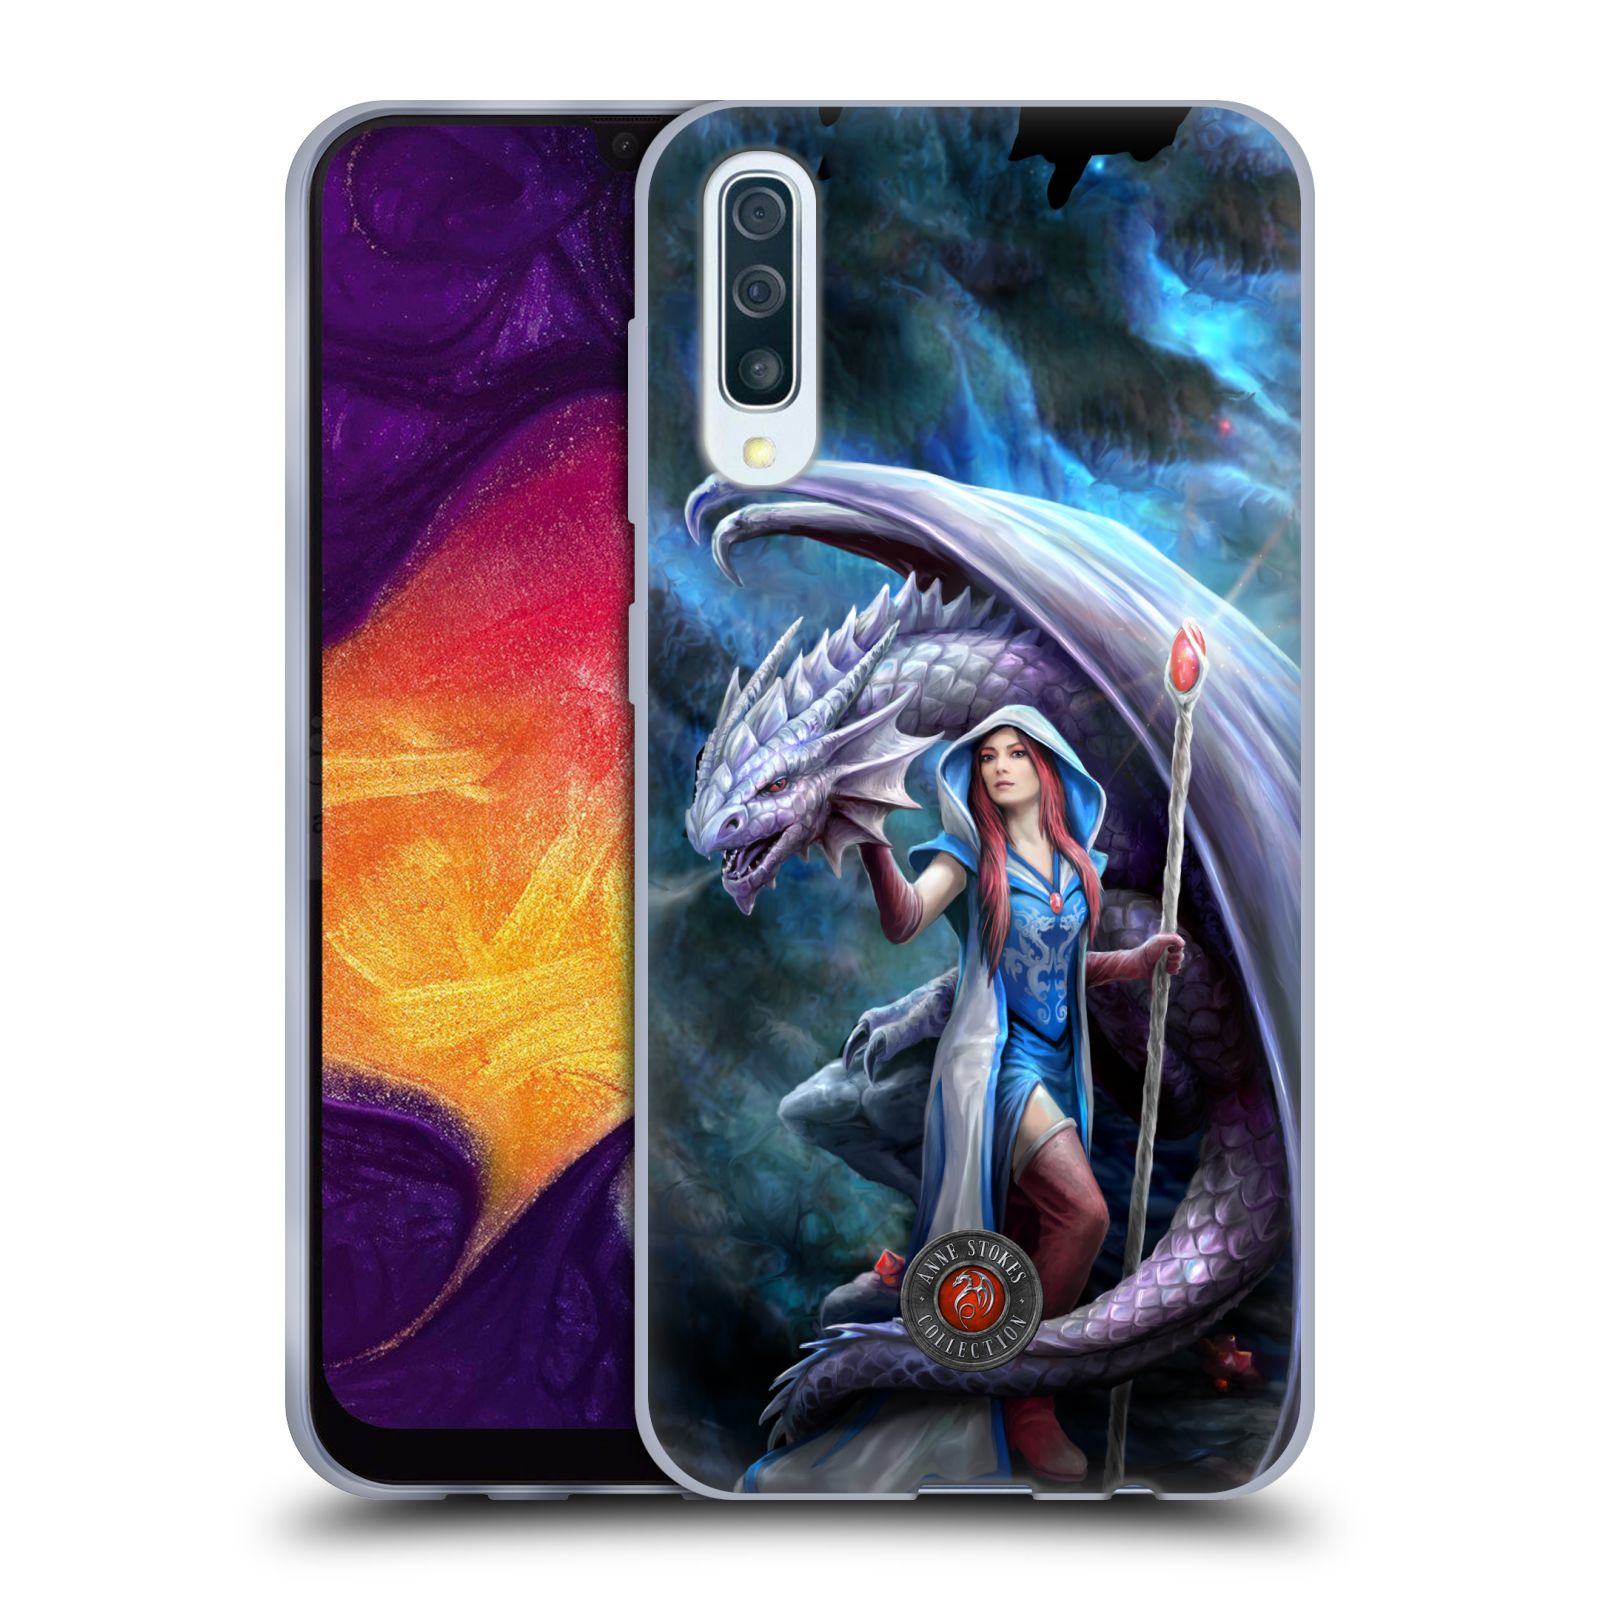 Official Anne Stokes Dragon Friendship 2 Mage Gel Case for Samsung Galaxy A50/A30s (2019)